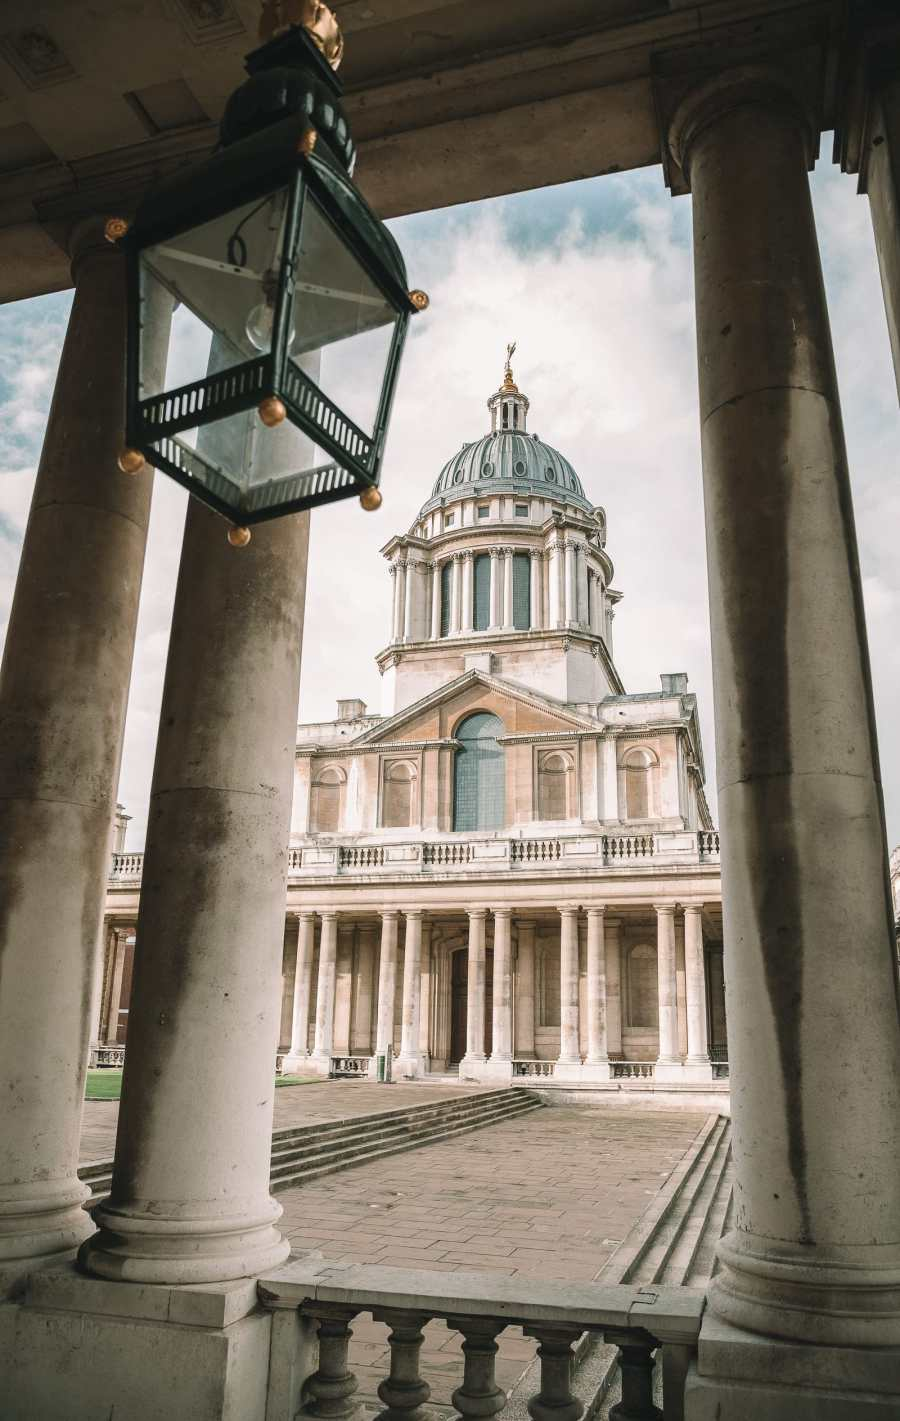 15 Of The Best Areas In London You Have To Visit (2)